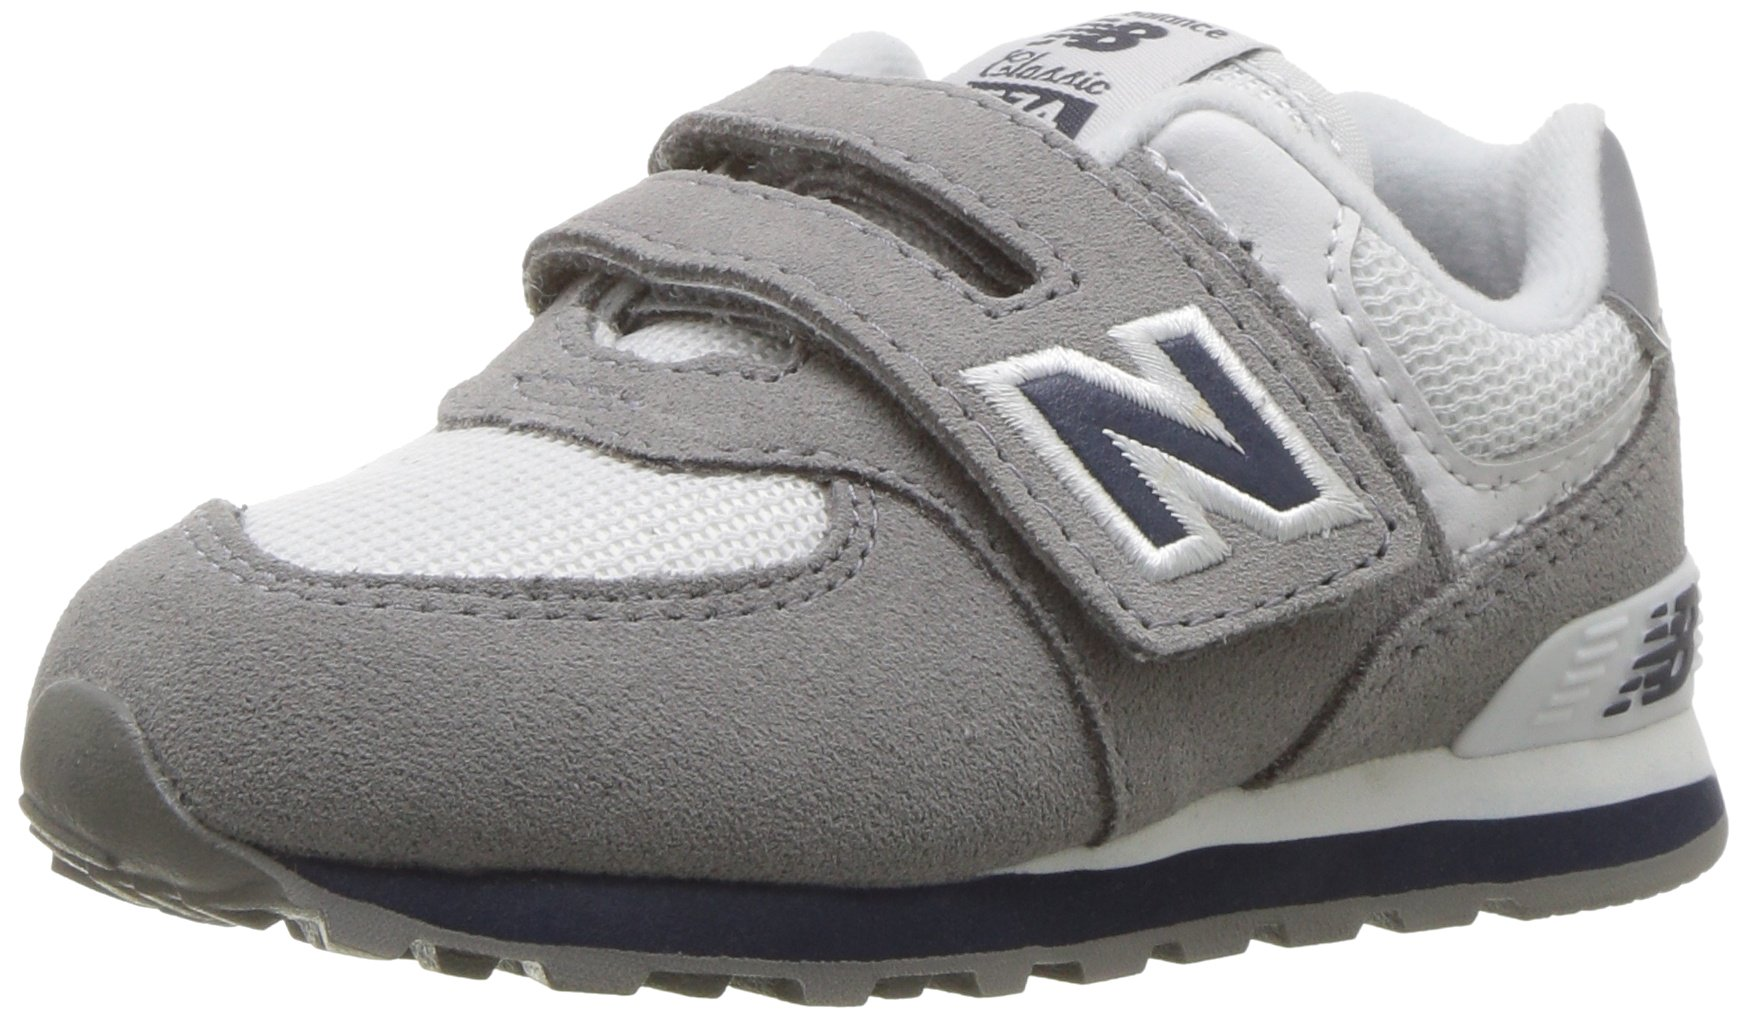 New Balance Boys' 574v1 Essentials Hook and Loop Sneaker Grey/Navy 8 W US Toddler